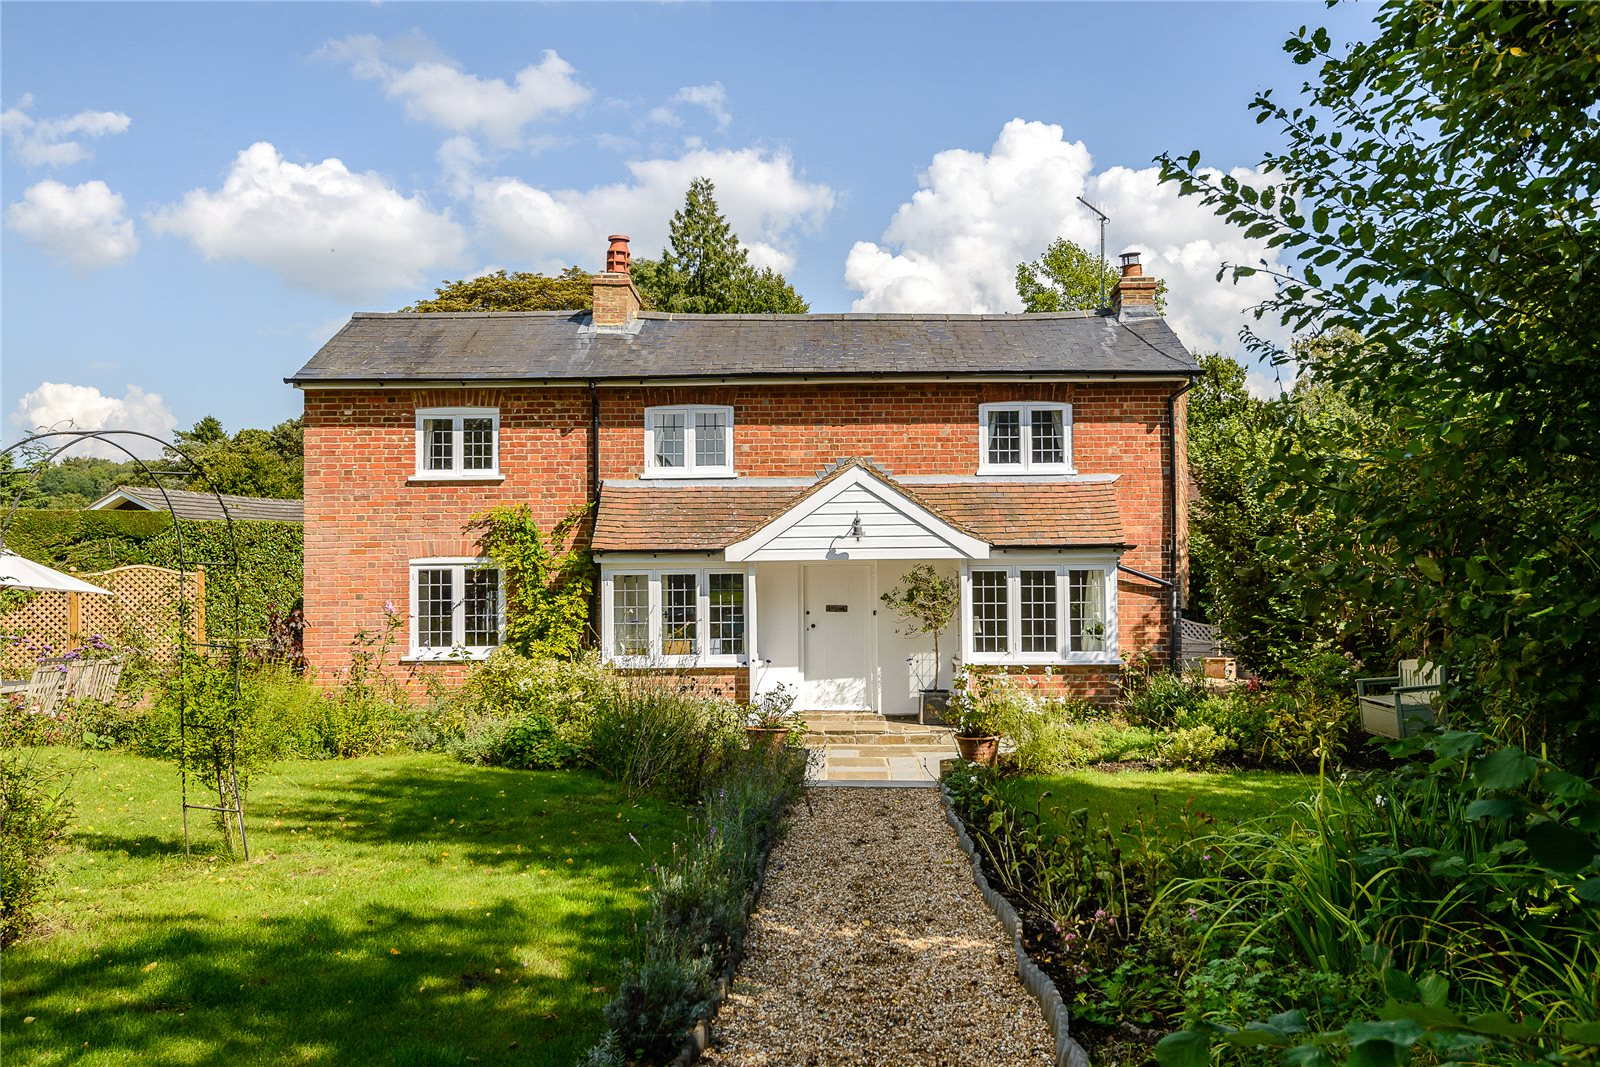 Villa per Vendita alle ore Tannery Lane, Gosden Common, Guildford, Surrey, GU5 Guildford, Inghilterra